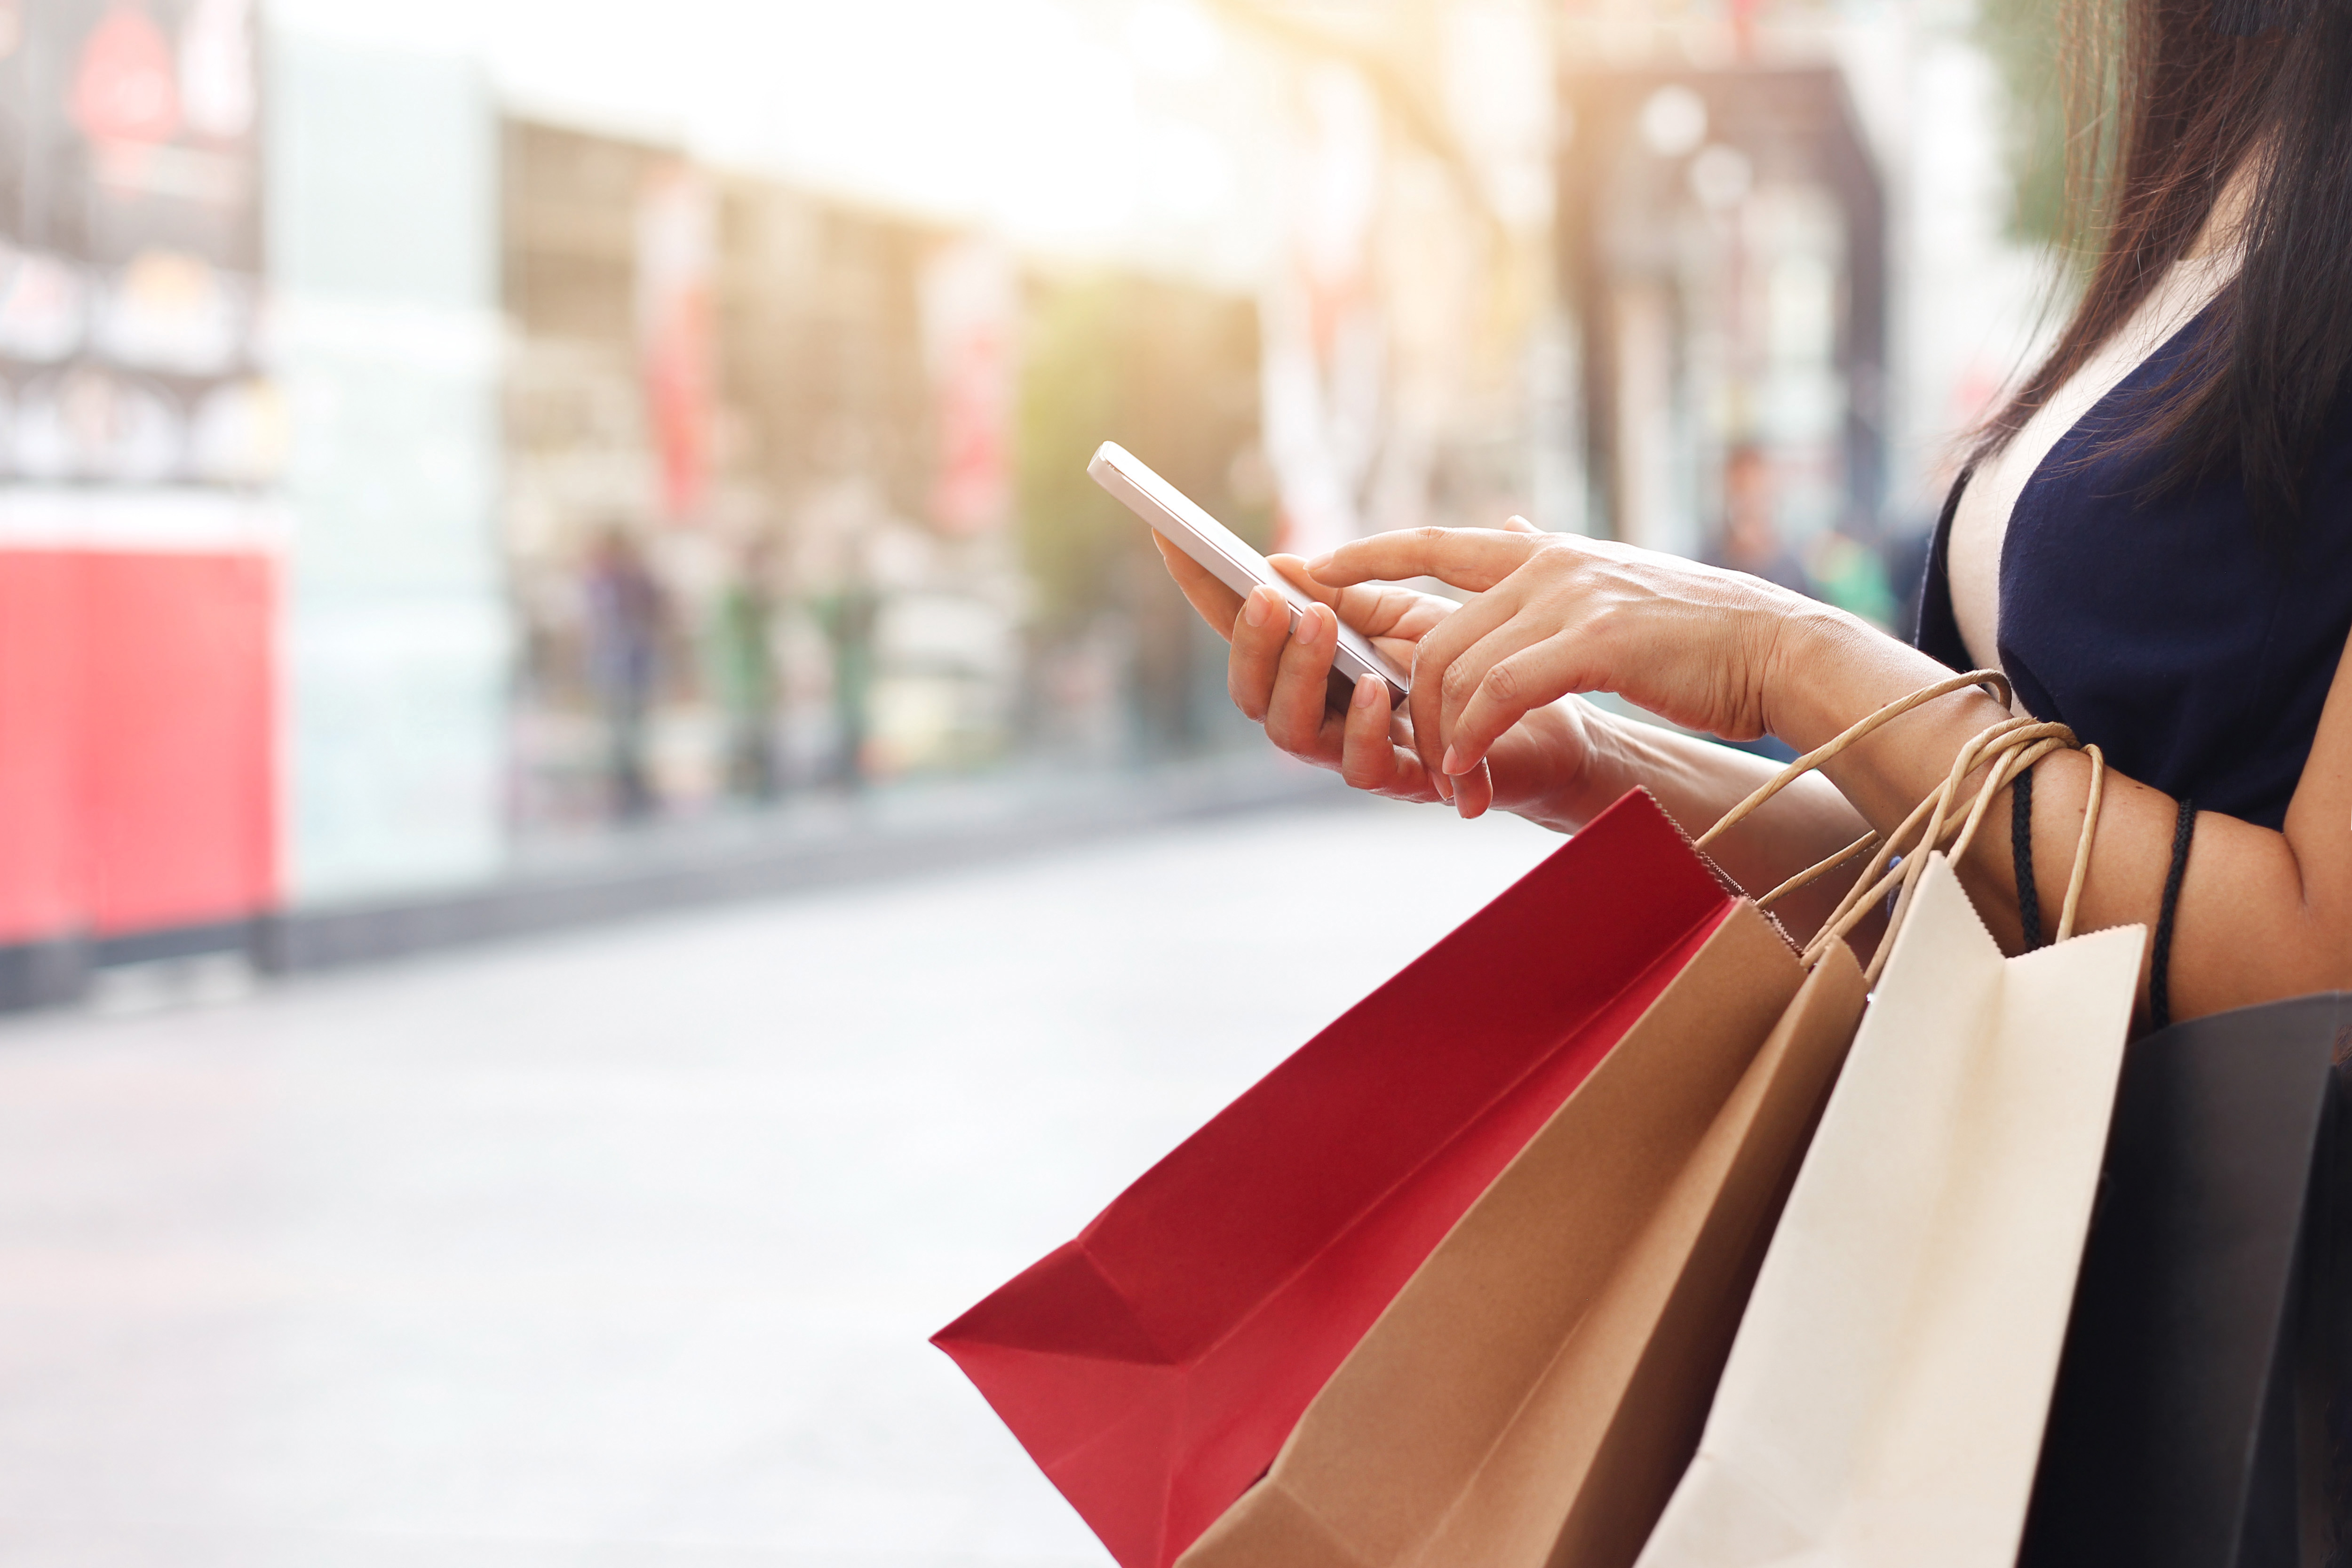 3-retail-marketing-insights-to-bridge-the-gap-between-online-and-in-store